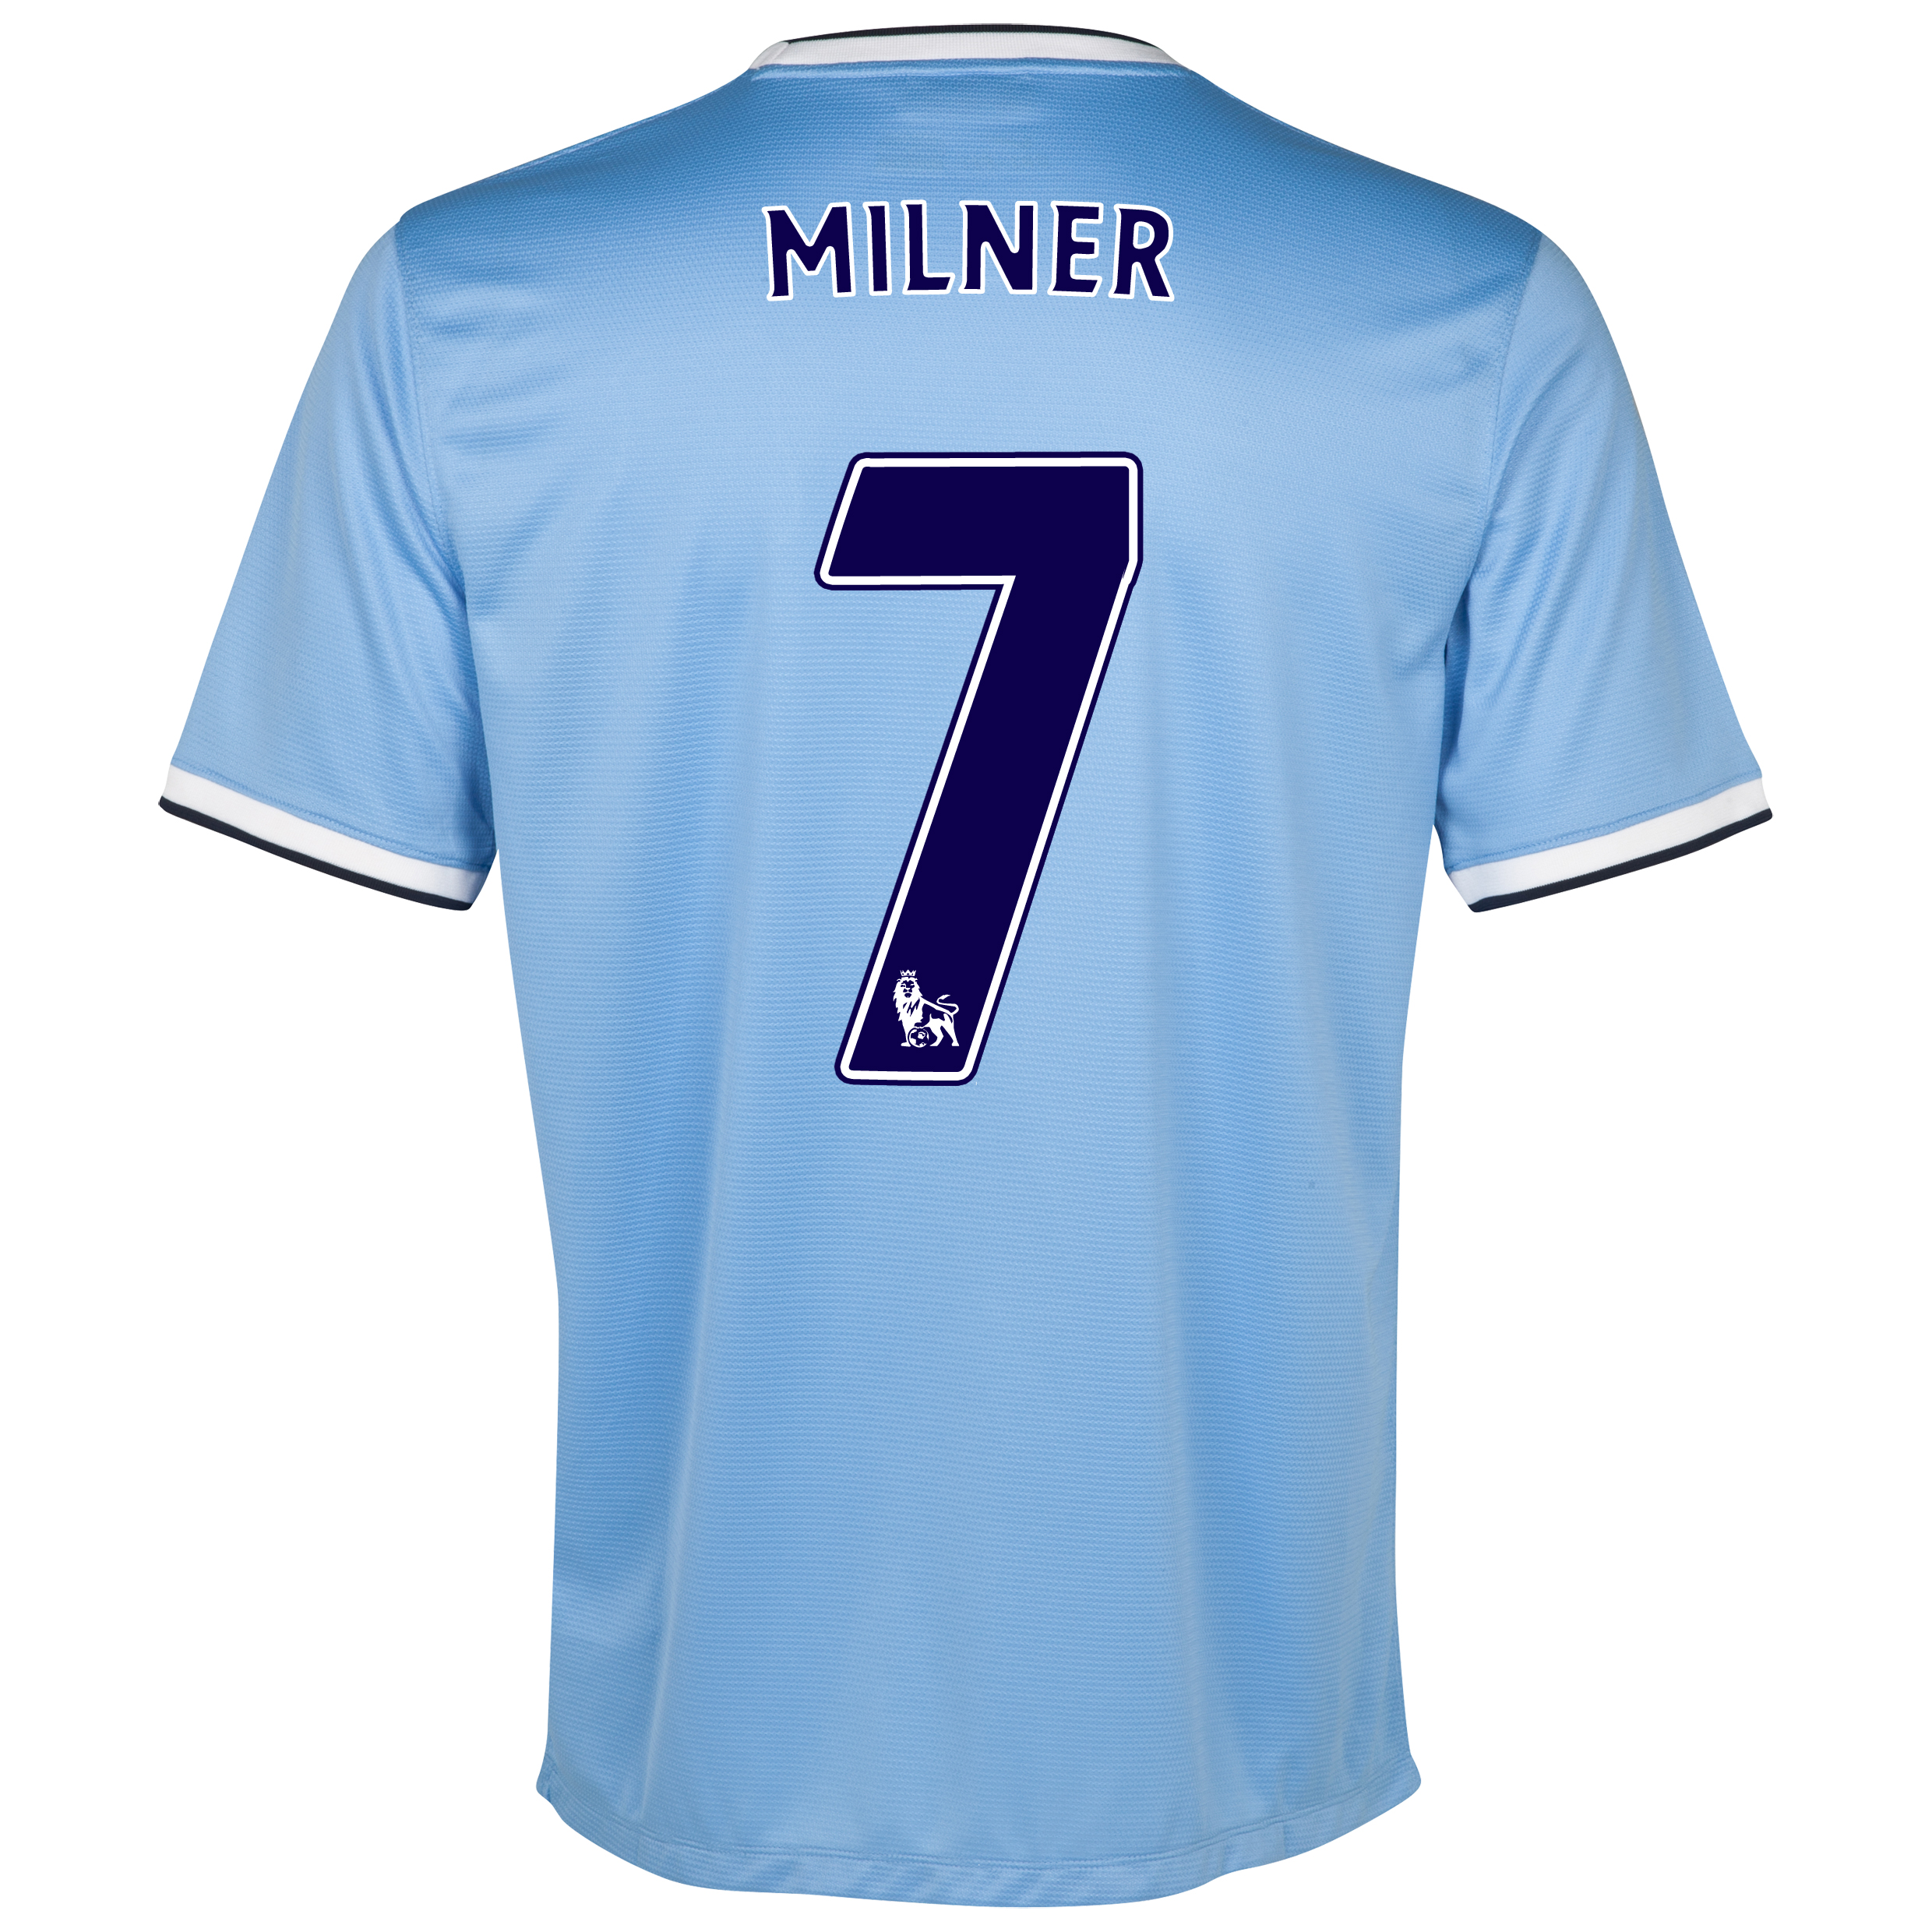 Manchester City Home Shirt 2013/14 - Womens with Milner 7 printing